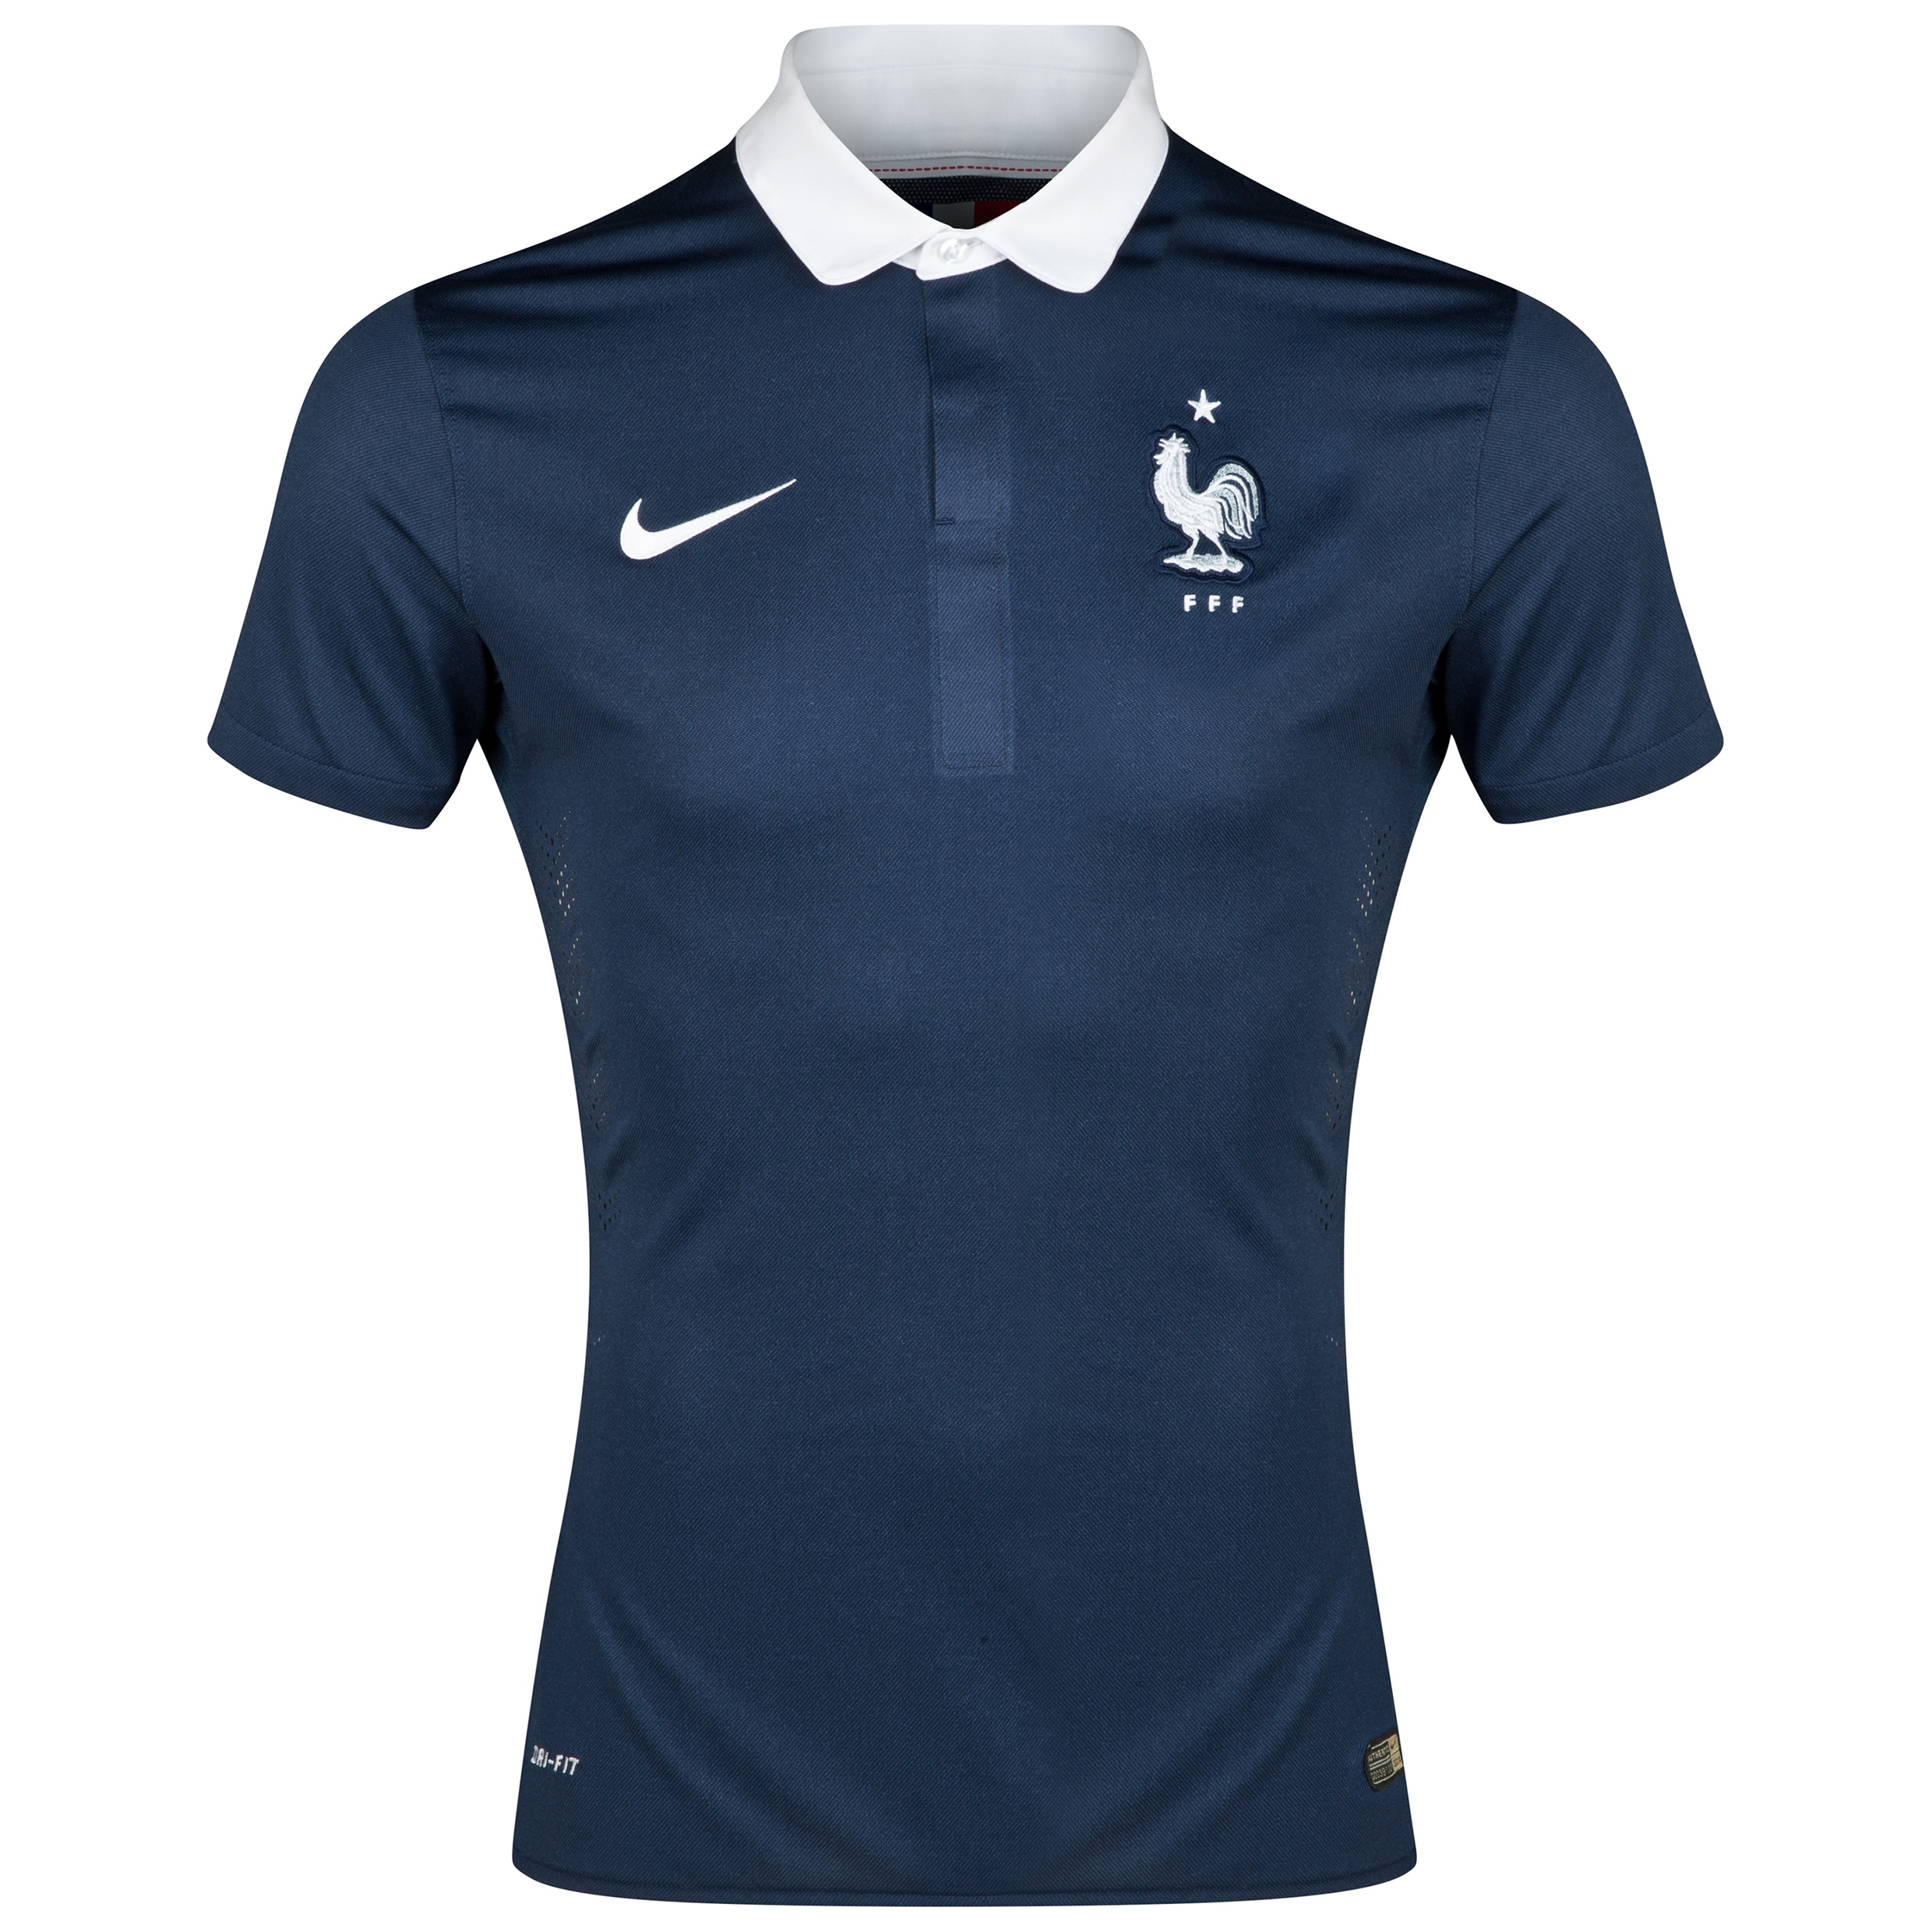 France Match Home Shirt 2014/15 Navy